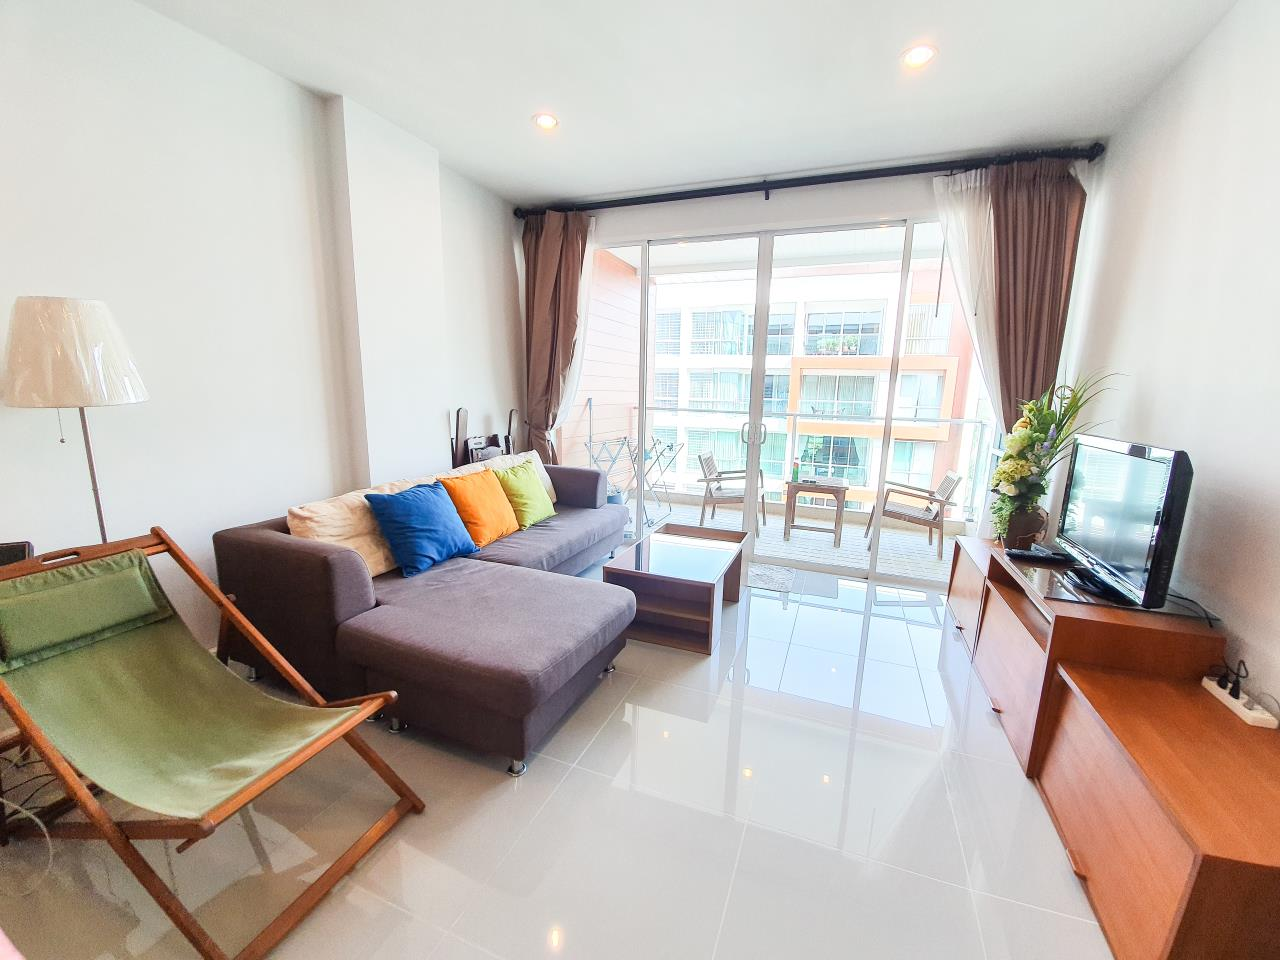 HOME - Real Estate Service Agency's The Breeze Hua Hin / 2 Beds (FOR RENT), เดอะ บรีซ หัวหิน / 2 ห้องนอน (ให้เช่า) T008 26